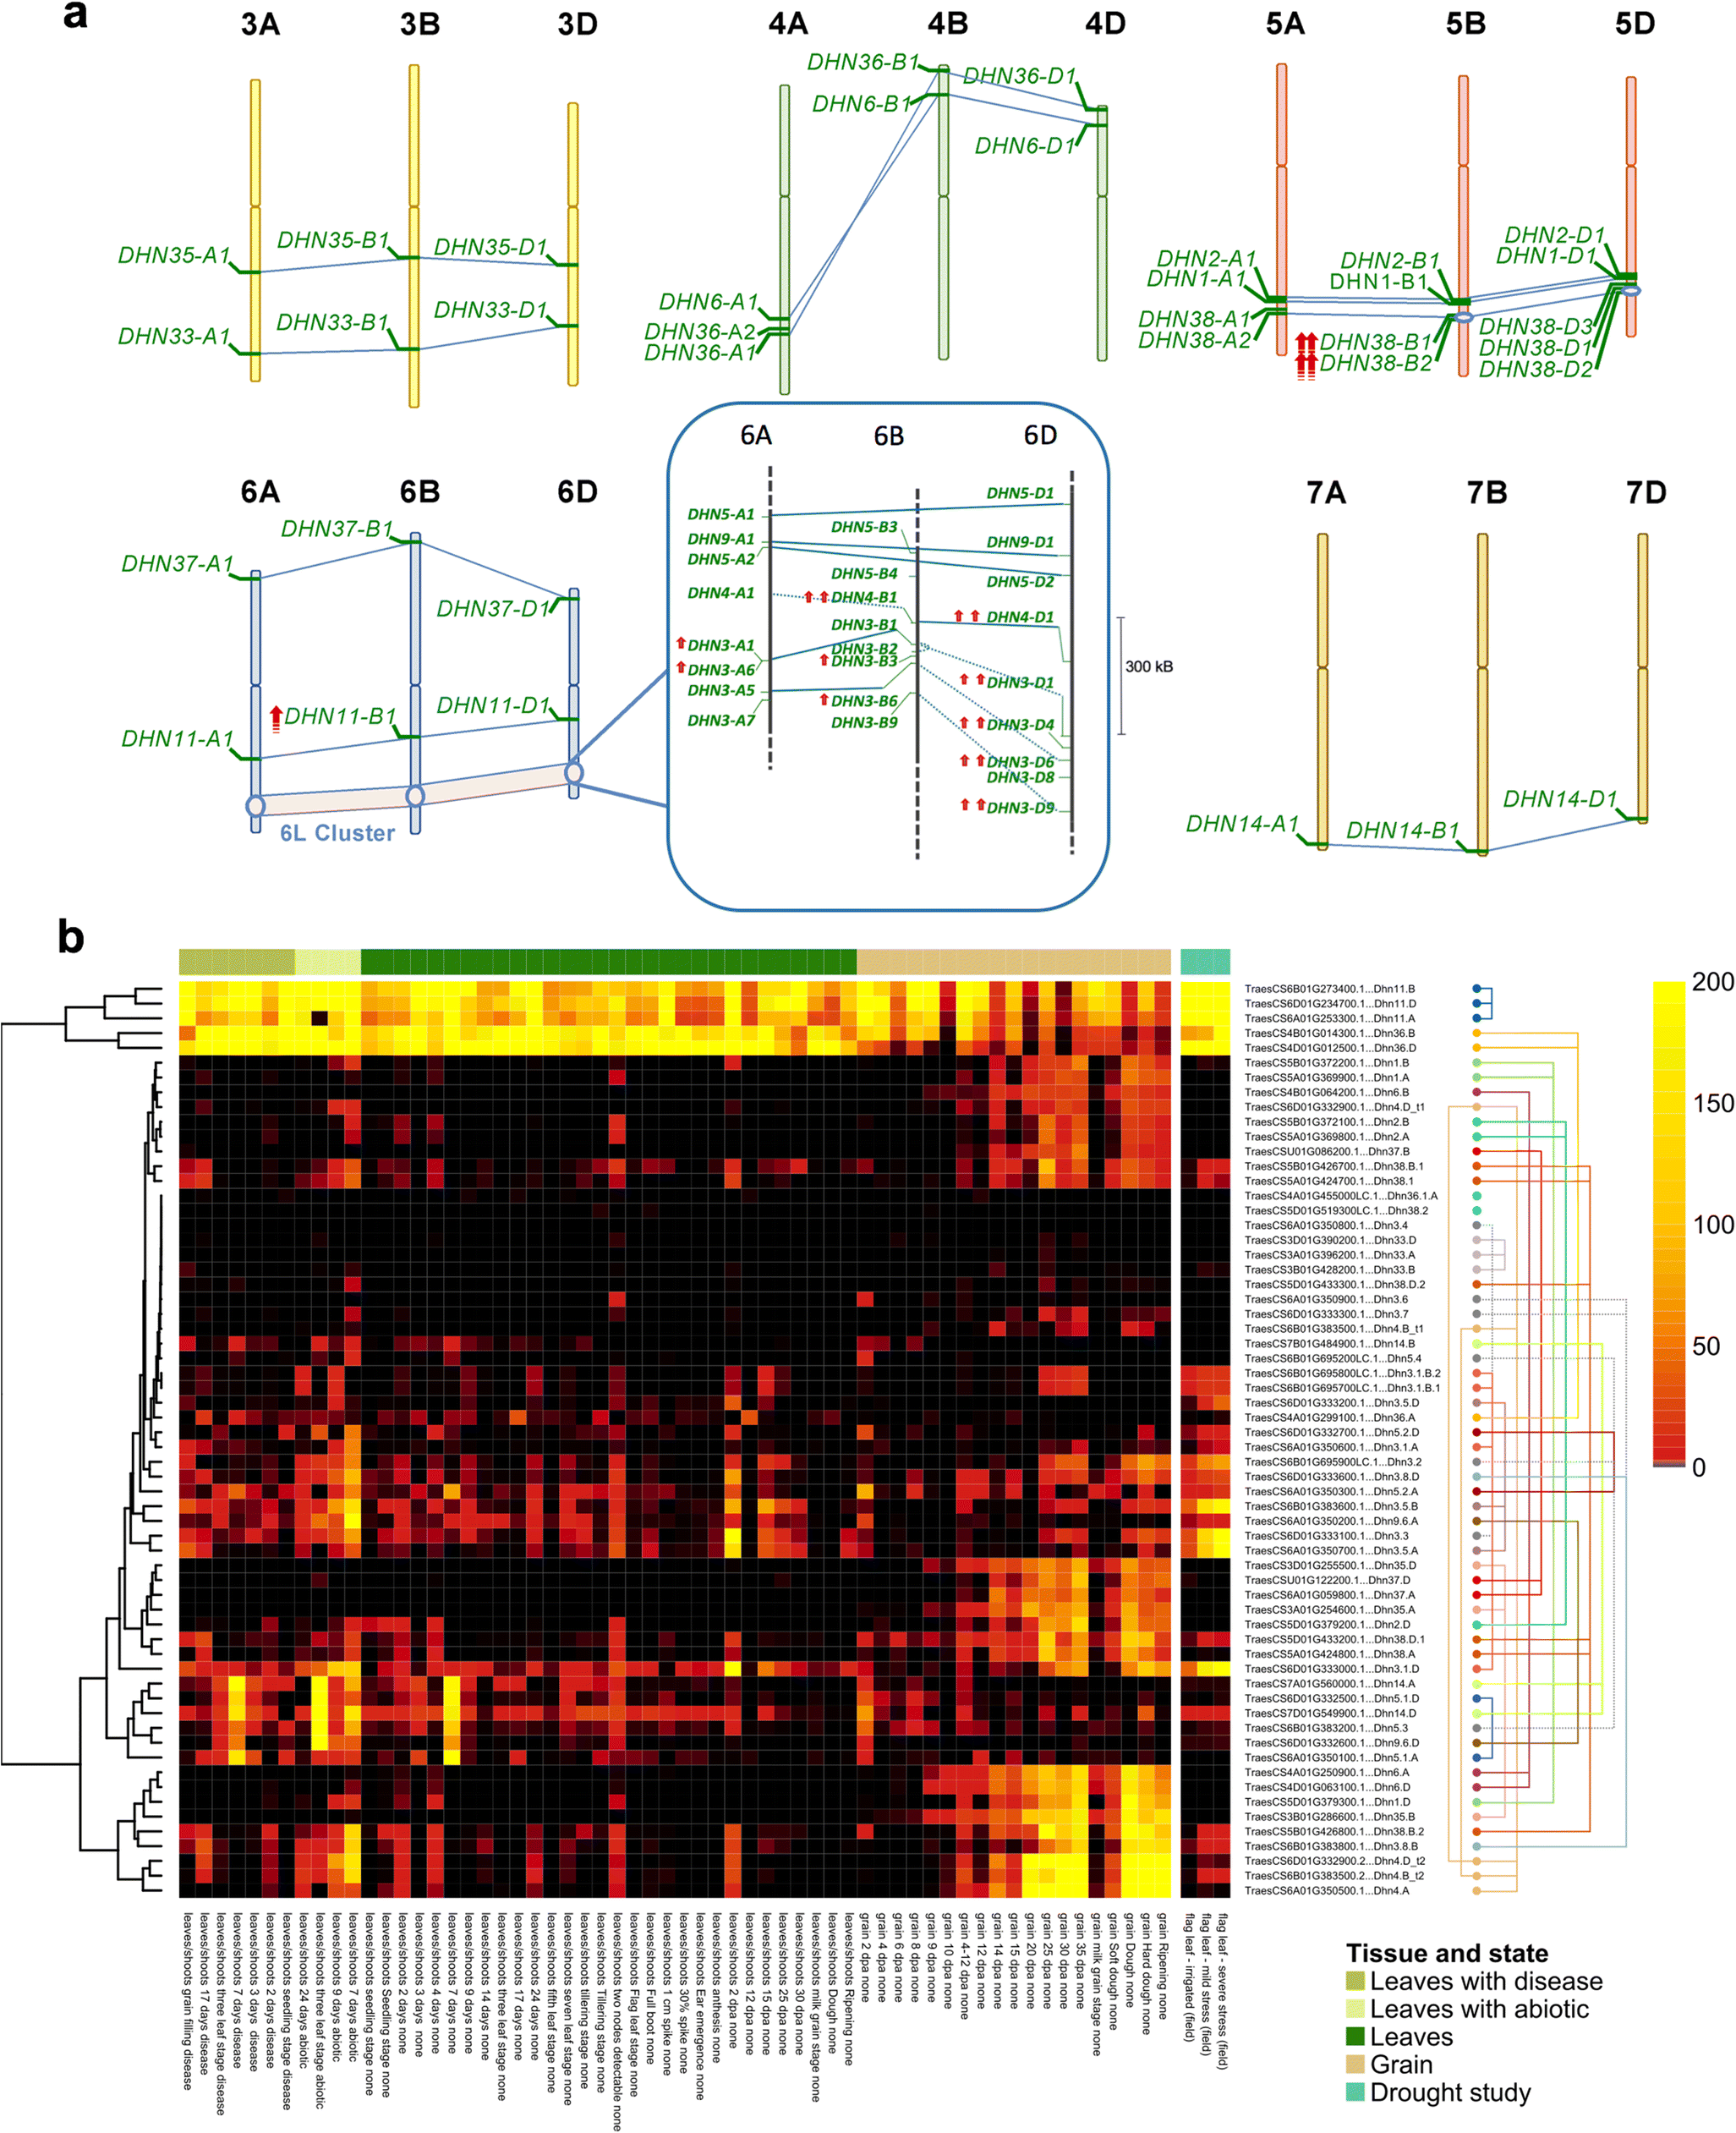 Hotspots in the genomic architecture of field drought responses in